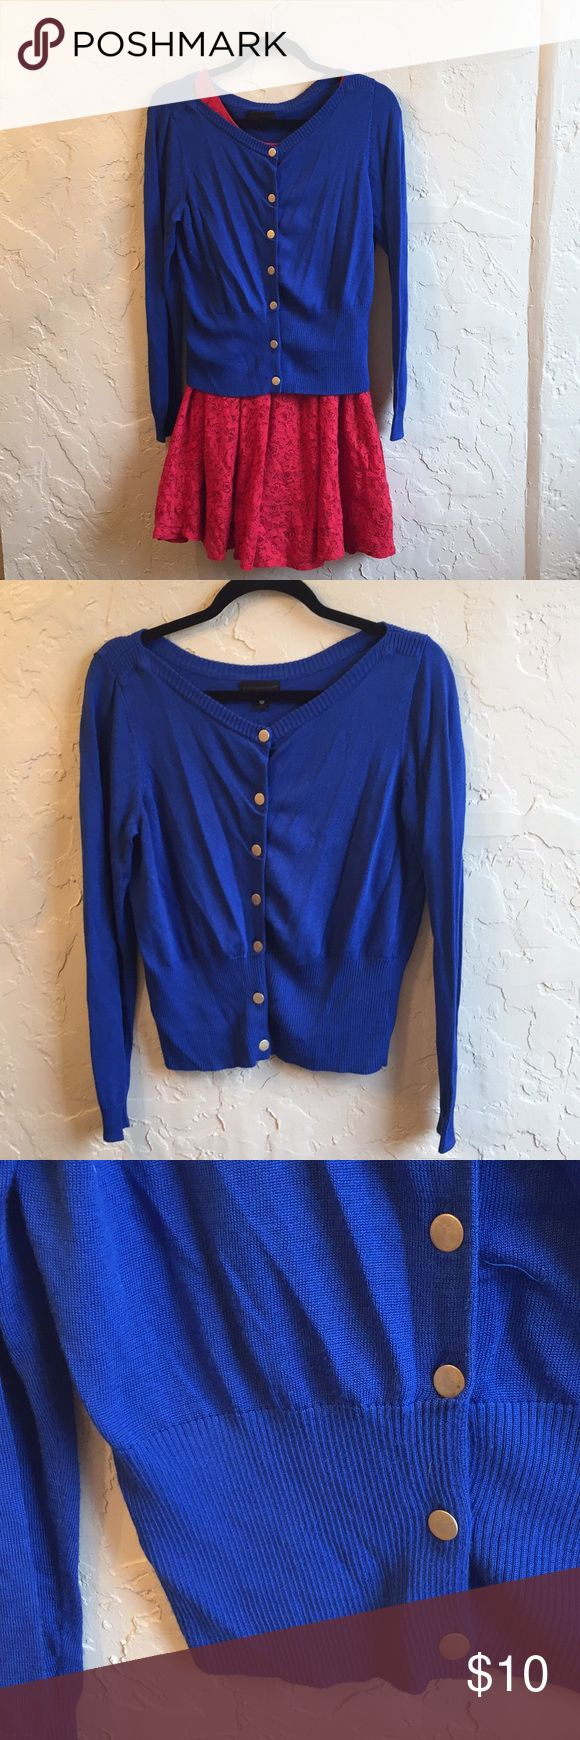 Best 25  Royal blue sweater ideas on Pinterest | Patagonia jacket ...